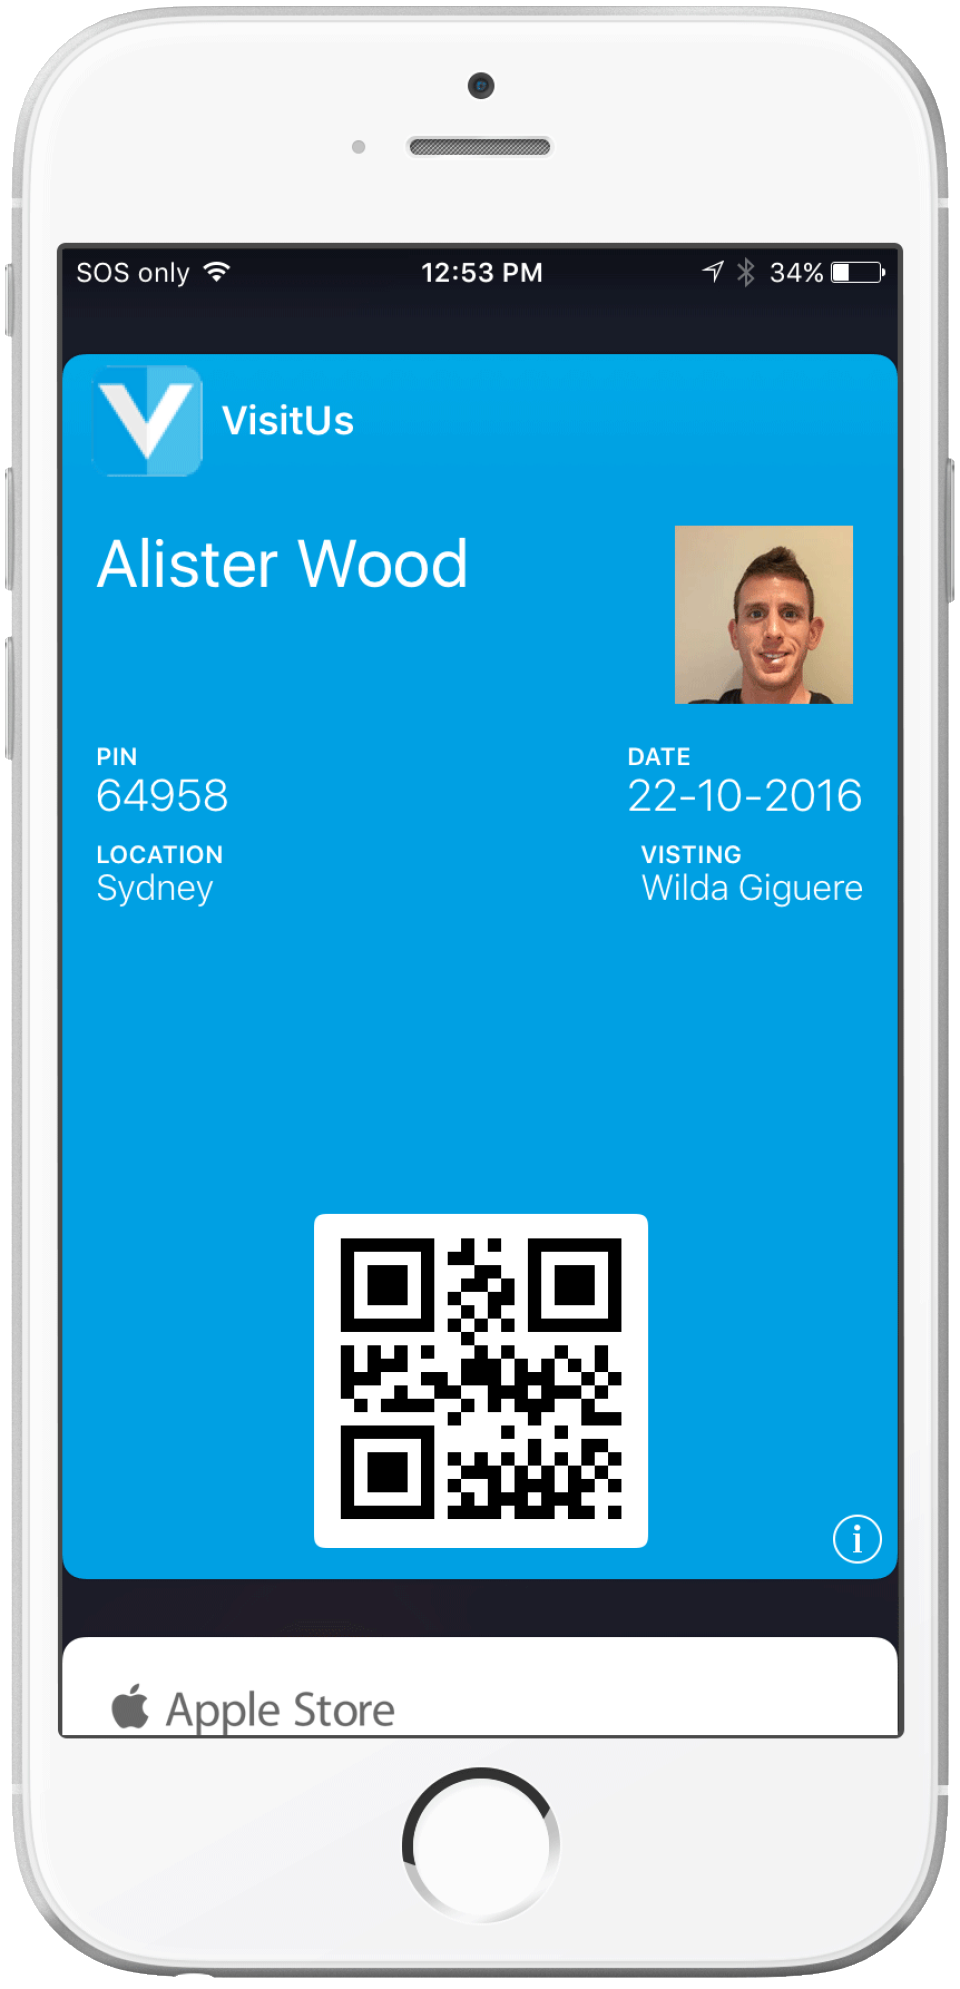 Visitors can now save their emailed visitor pass to the Apple Passbook or Android compatible app